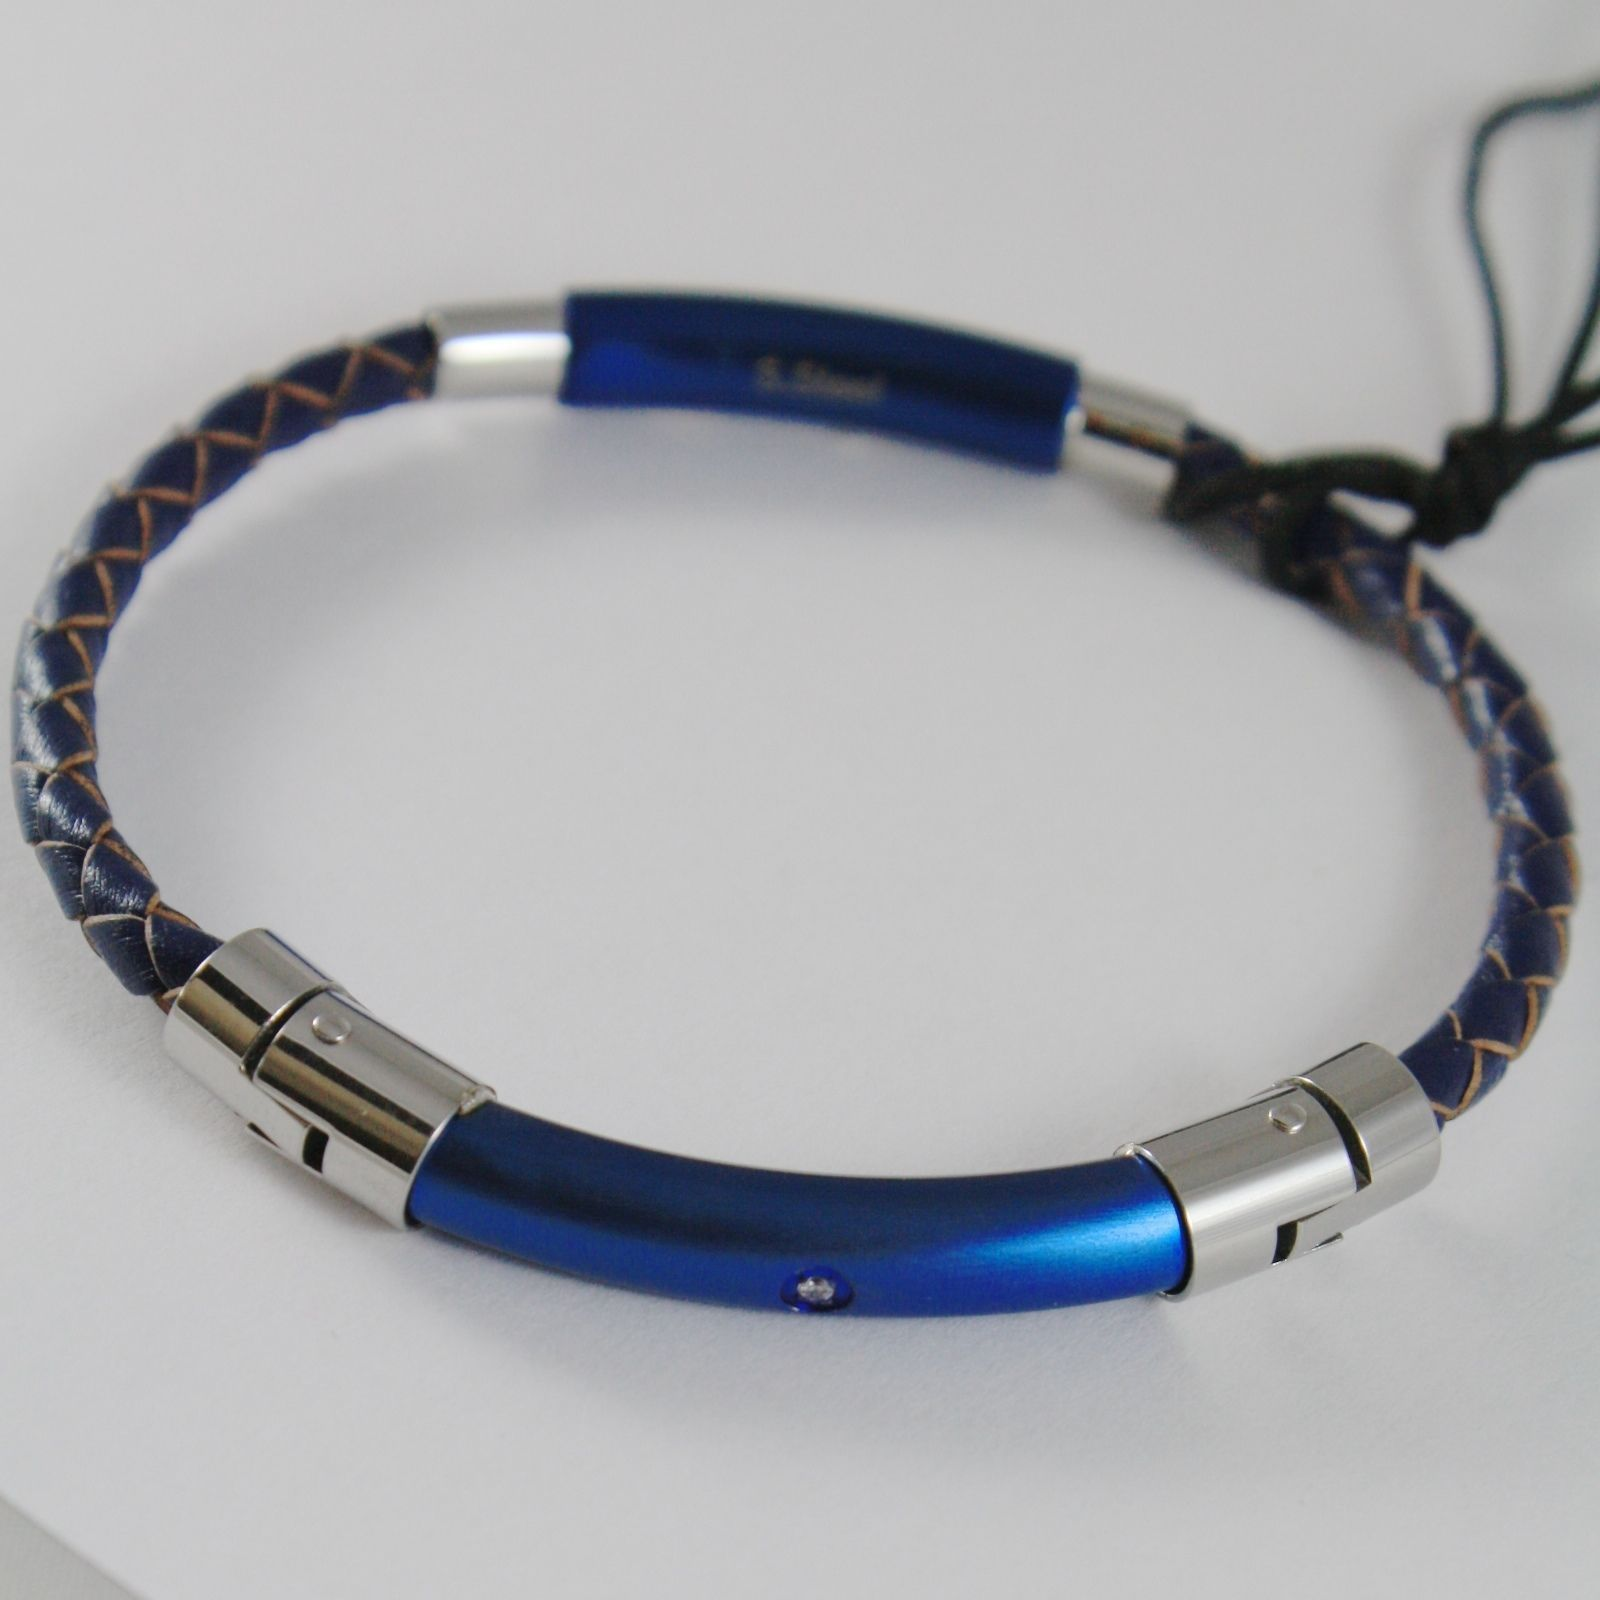 MEN'S BRACELET STEEL AND LEATHER SEMI-RIGID CESARE PACIOTTI 4US 4UBR1536